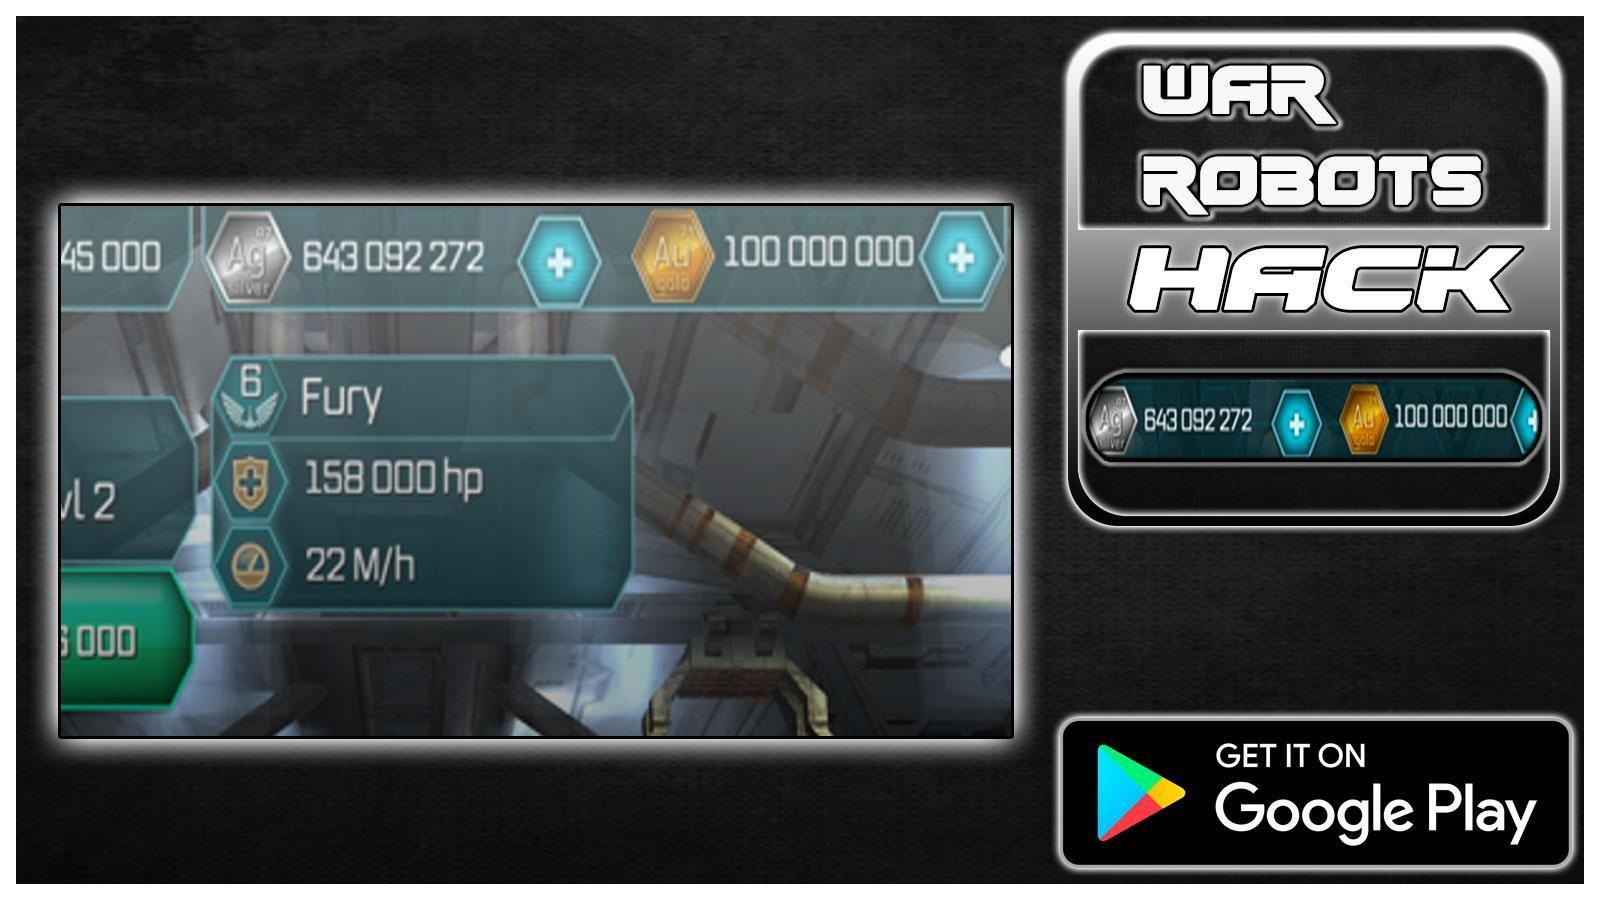 Android Ios War Robots Hack Apk Get 9999999 Gold And Silver War